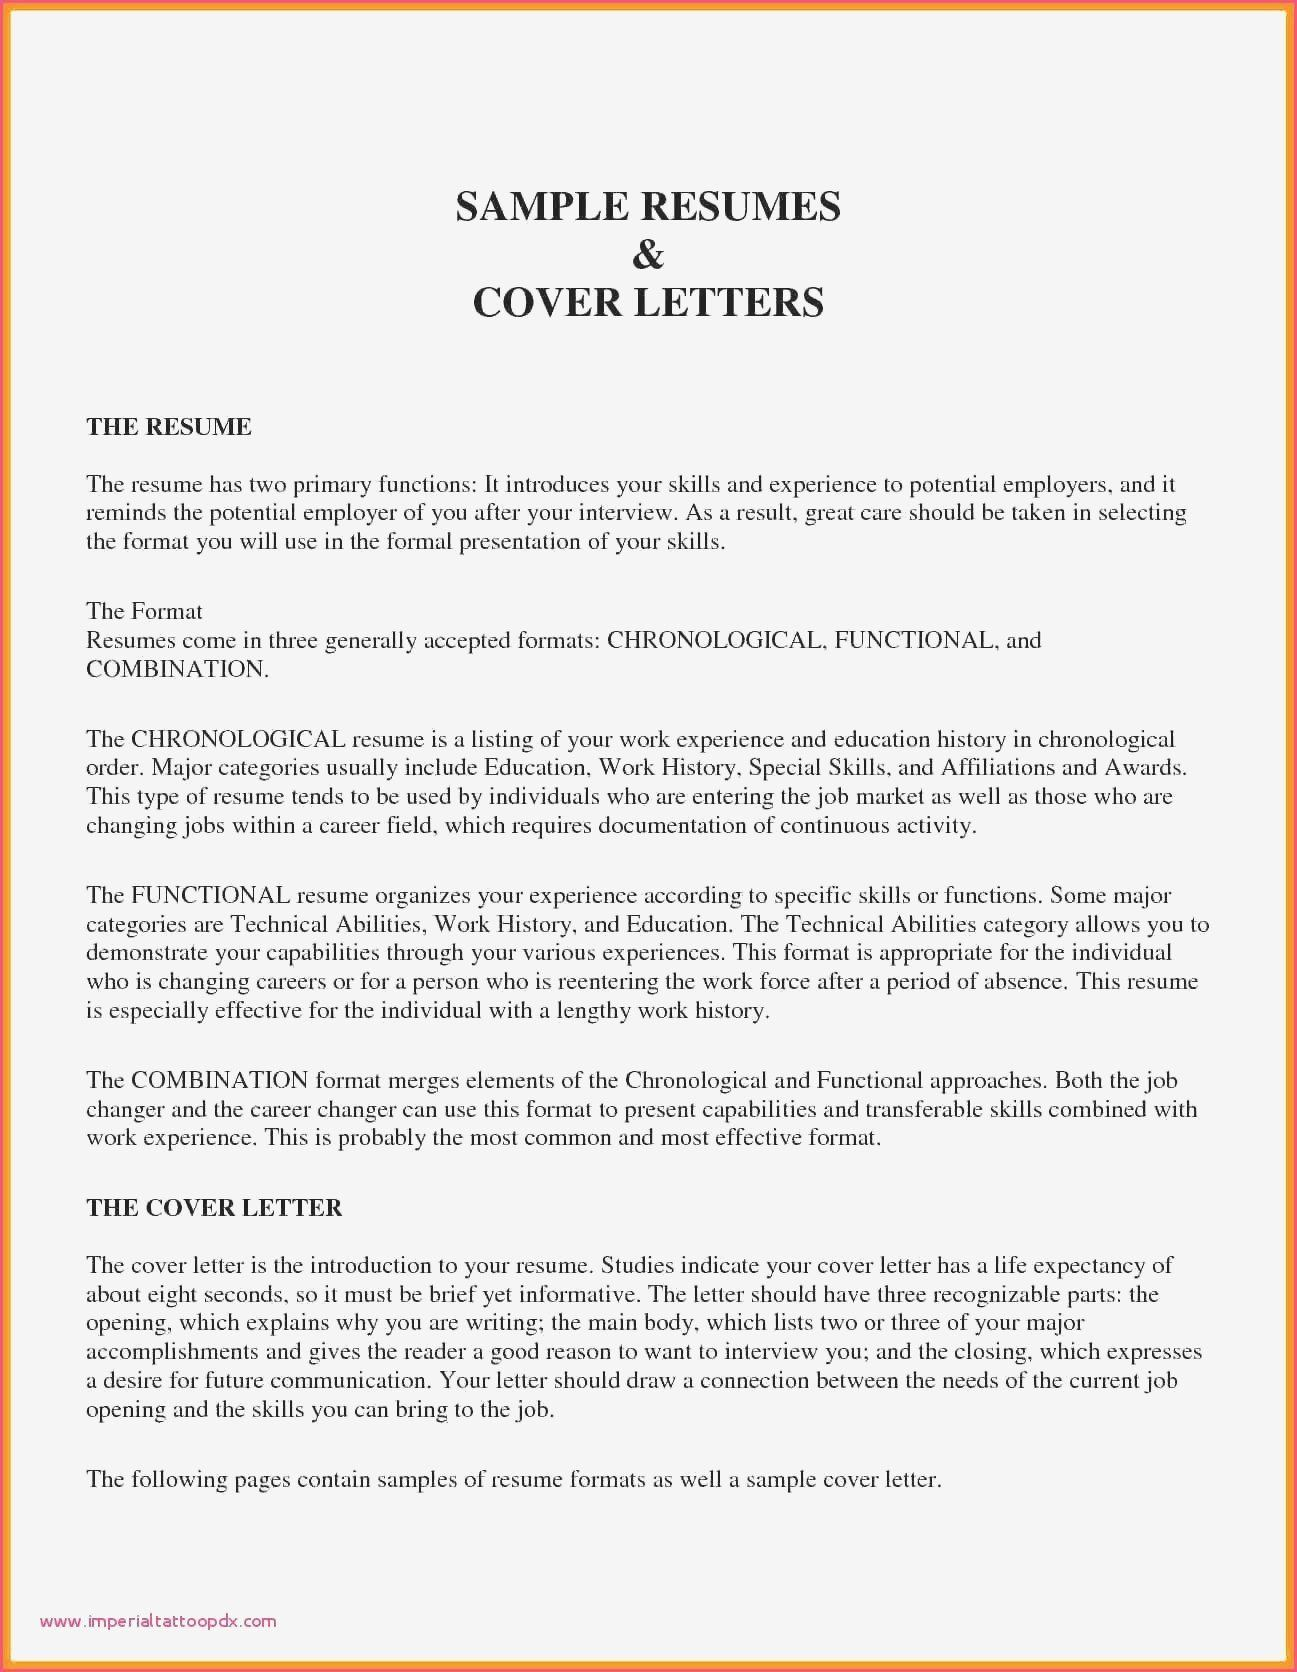 What Kind Of Paper Should I Print My Resume On Fresh Resume Format Examples Karate Do N Cover Letter For Resume Sample Resume Cover Letter Career Change Resume